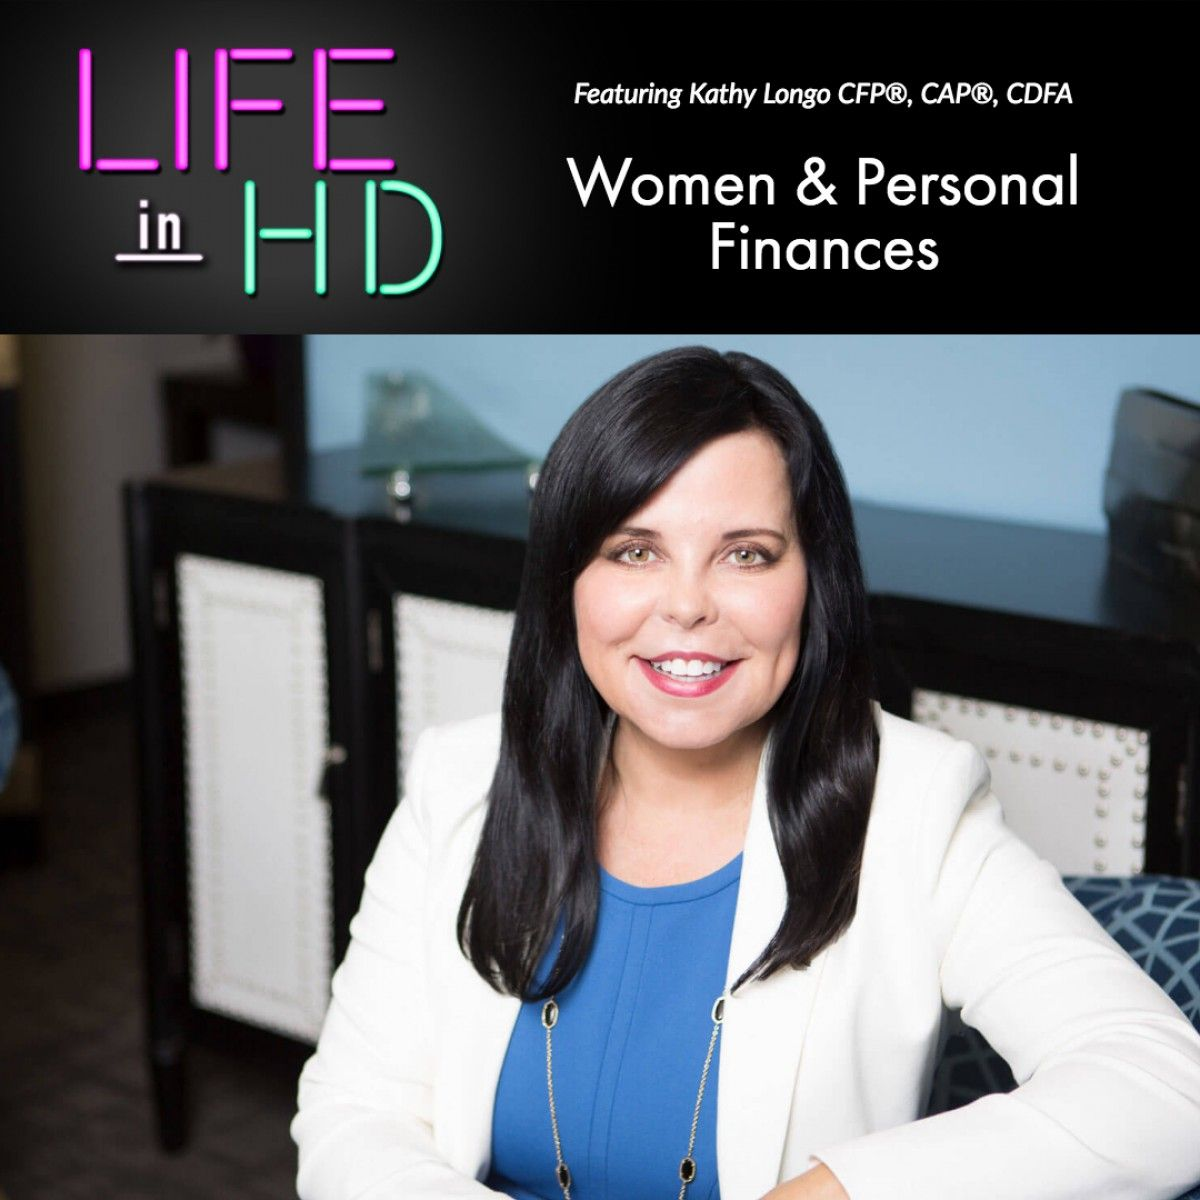 Tune into Life in HD to Hear Kathy's Thoughts on How Women Can Improve Their Approach to Personal Finance